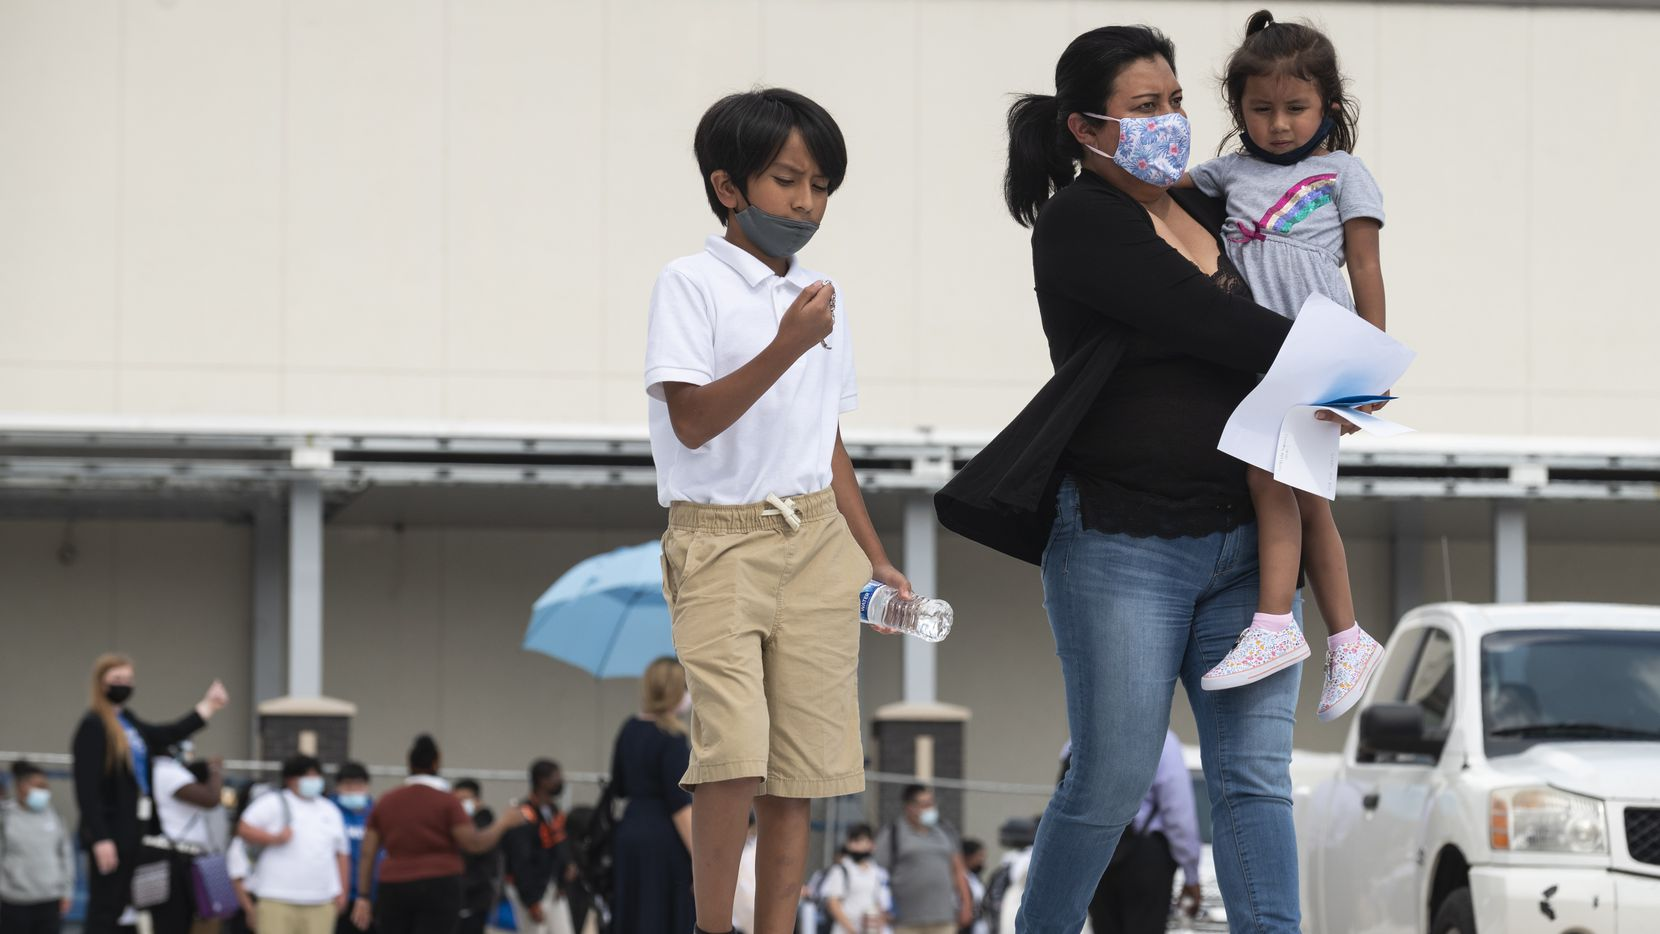 A mother walks with her children after her son's first day back to school at E.D. Walker Middle School in Dallas. Texas' under-18 population grew 6% over the past decade, but the number declined 2% in Dallas County, according to recent census data.